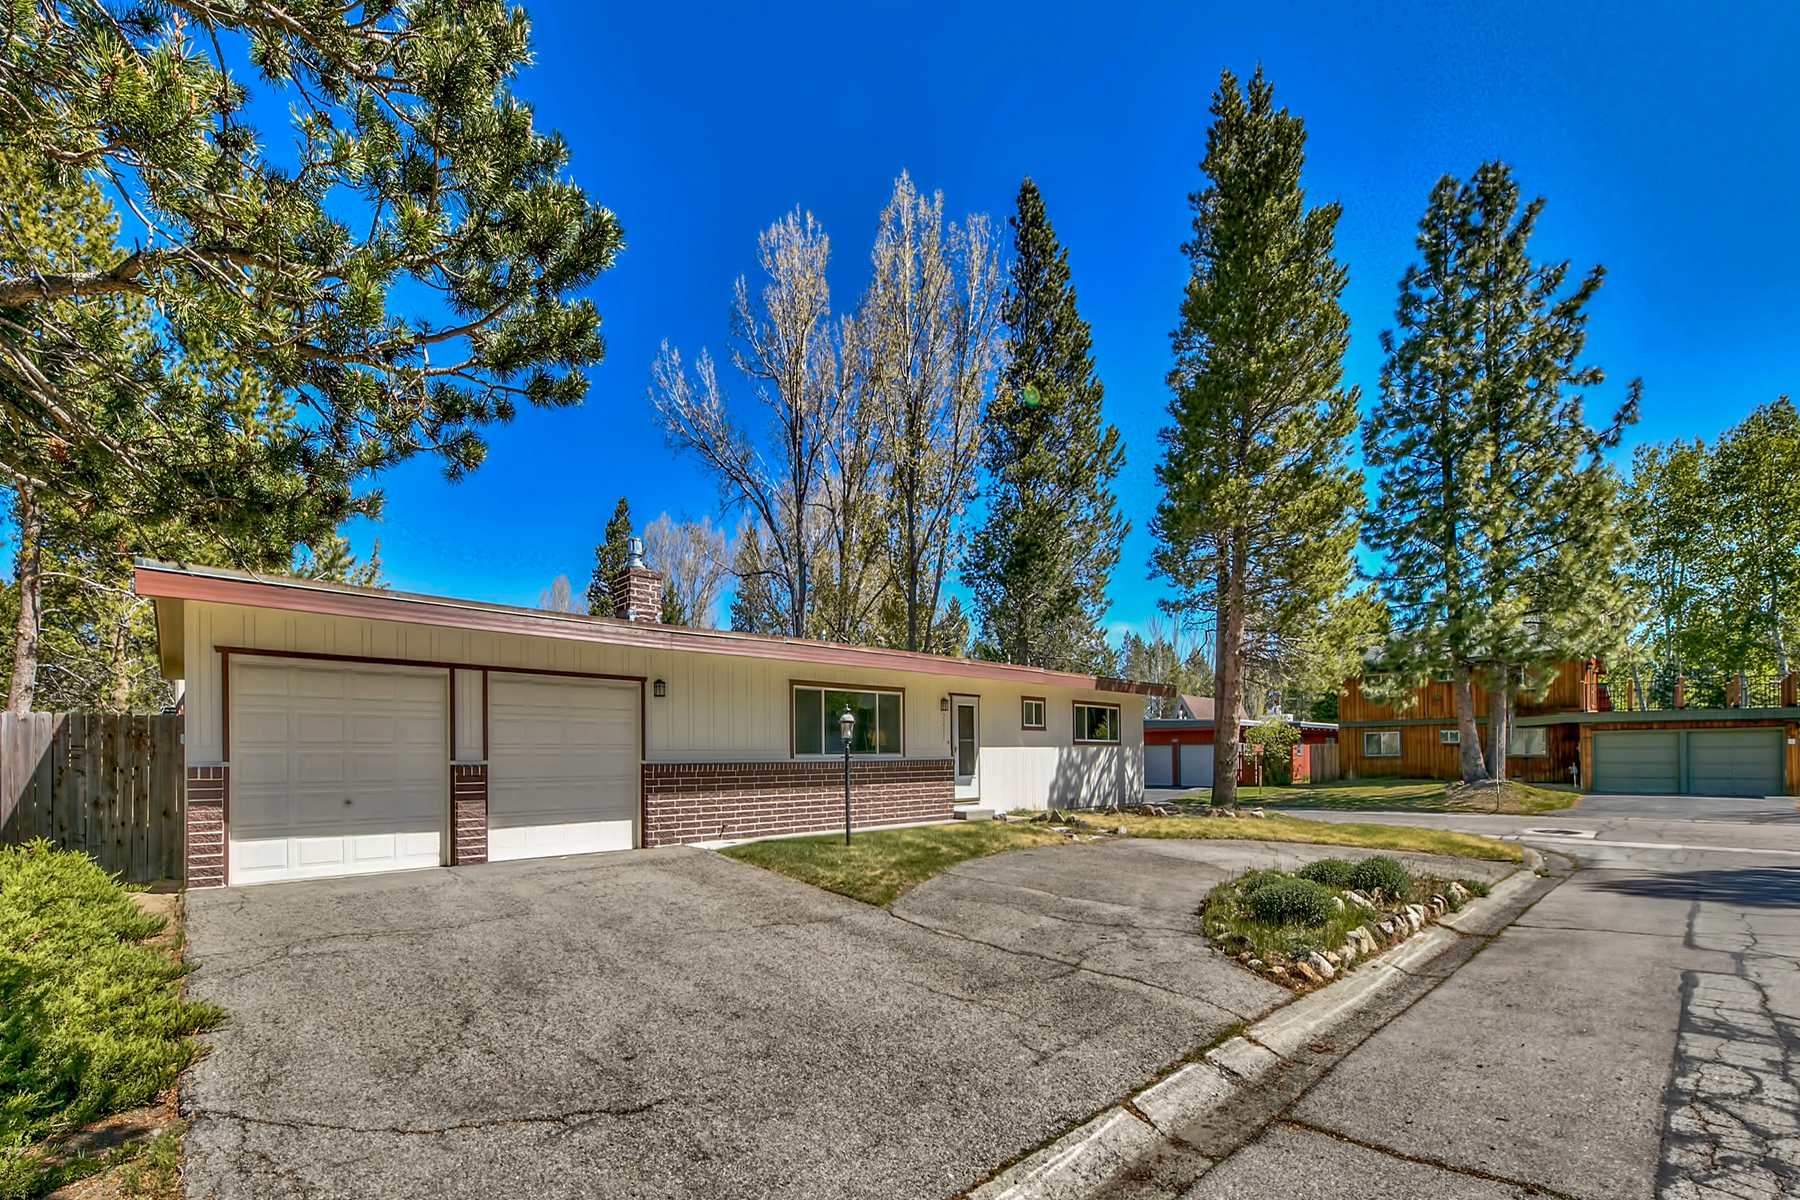 Single Family Homes for Active at 2255 Inverness Drive, South Lake Tahoe, CA 96150 2255 Inverness Drive South Lake Tahoe, California 96150 United States